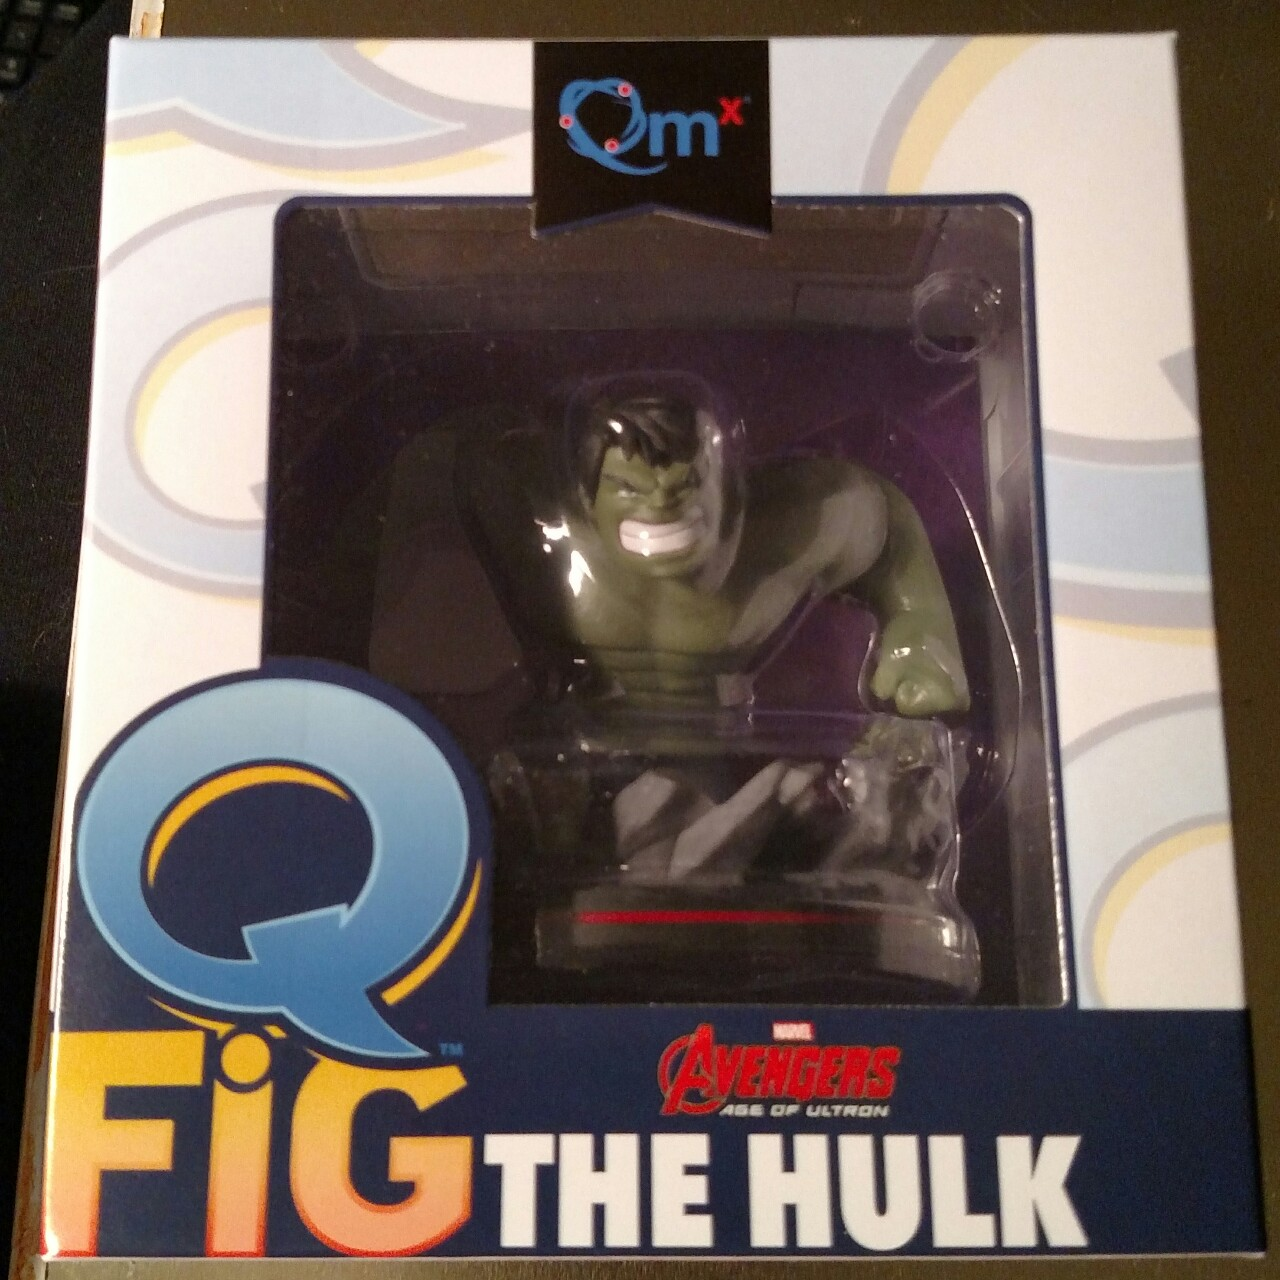 Product Image 1 - The Hulk by Q-Fig. Loot